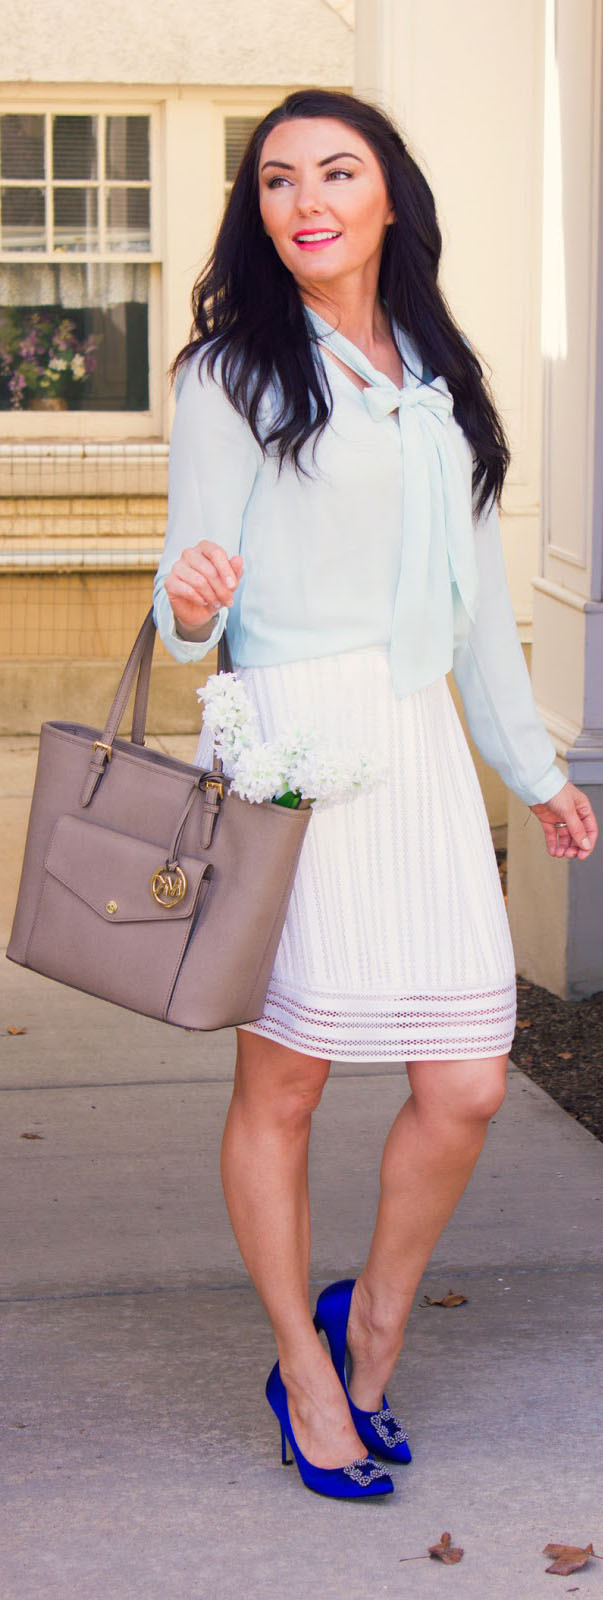 23 Fabulous Spring Outfits To Stand Out From The Crowd Latest Outfit Ideas